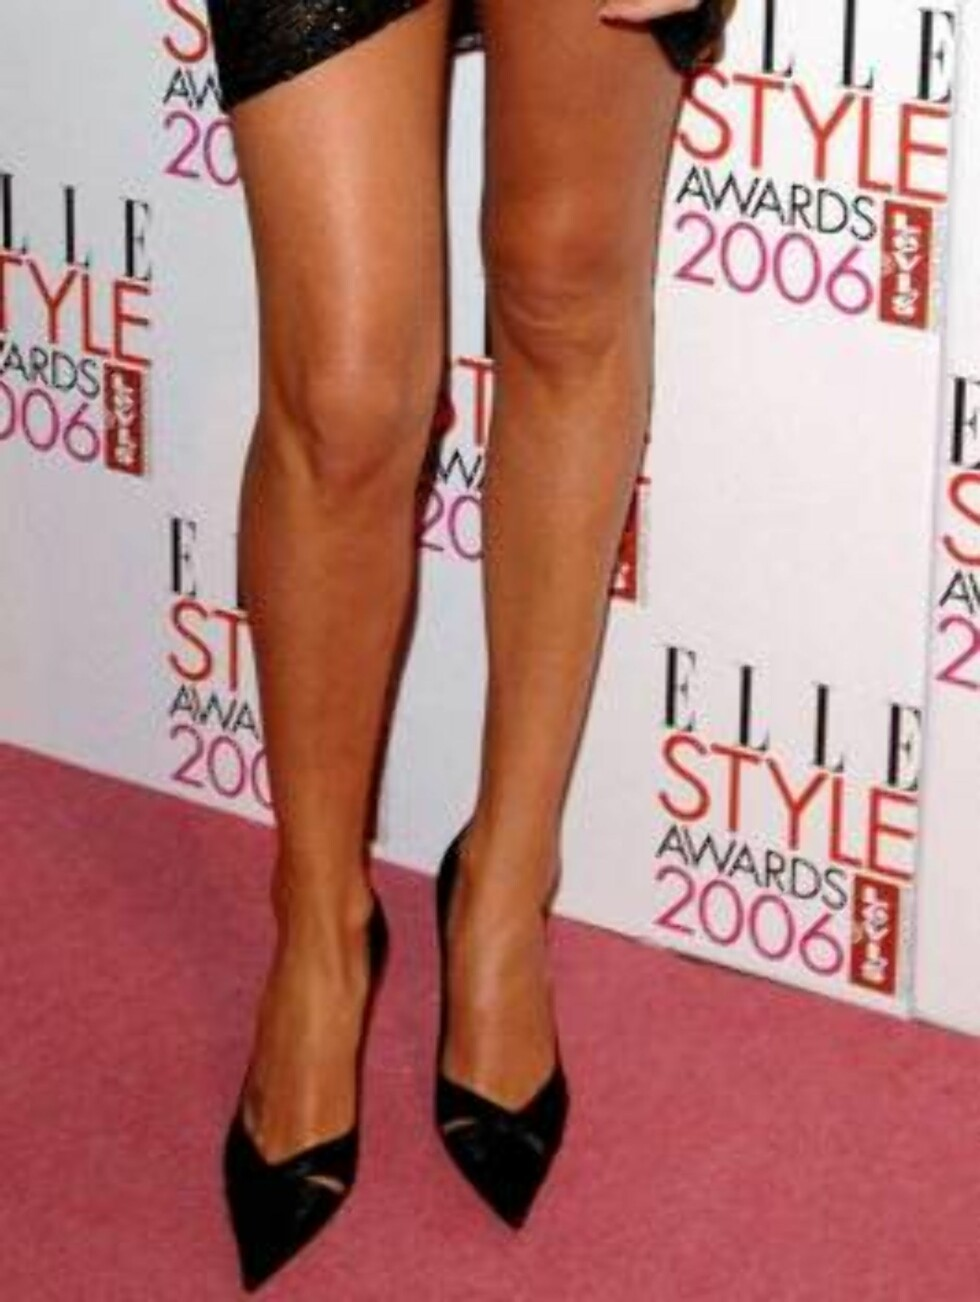 Actress Charlize Theron arrives for the Elle Style Awards 2006, from the Atlantis Gallery at the Old Trueman Brewery, east London, Monday Feb. 20, 2006.    (AP Photo/ Ian West/PA) Foto: AP